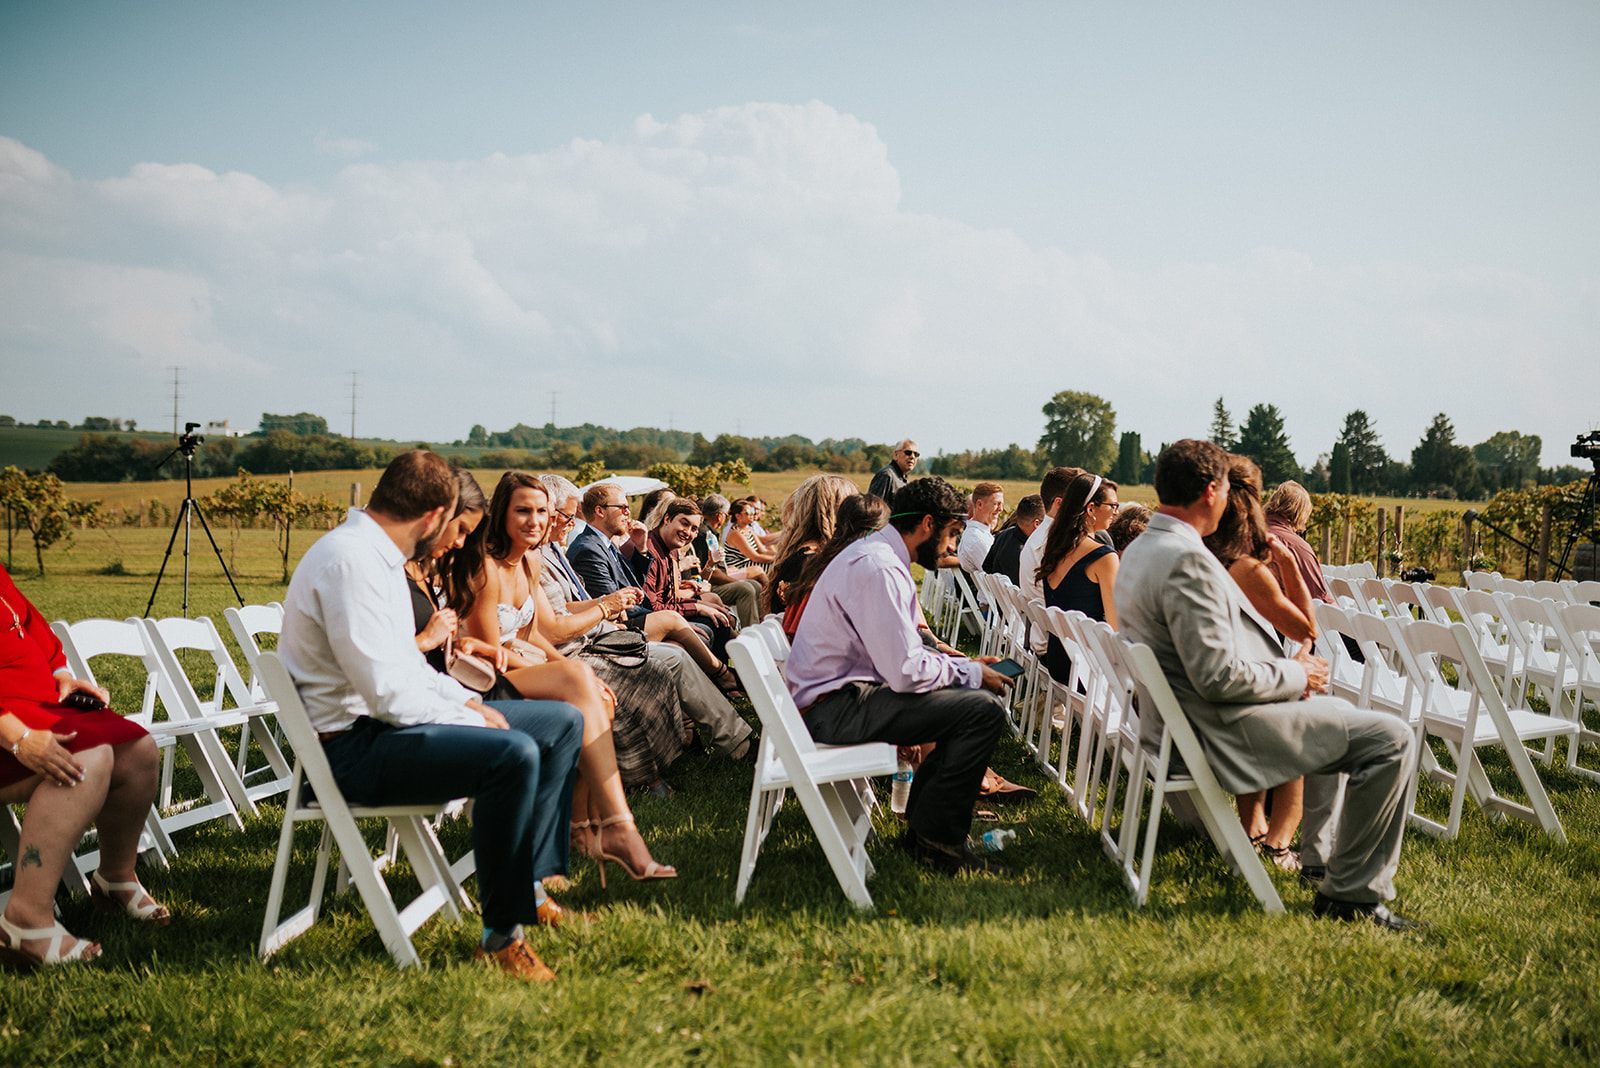 overthevineswisconsinwedding_0519.jpg